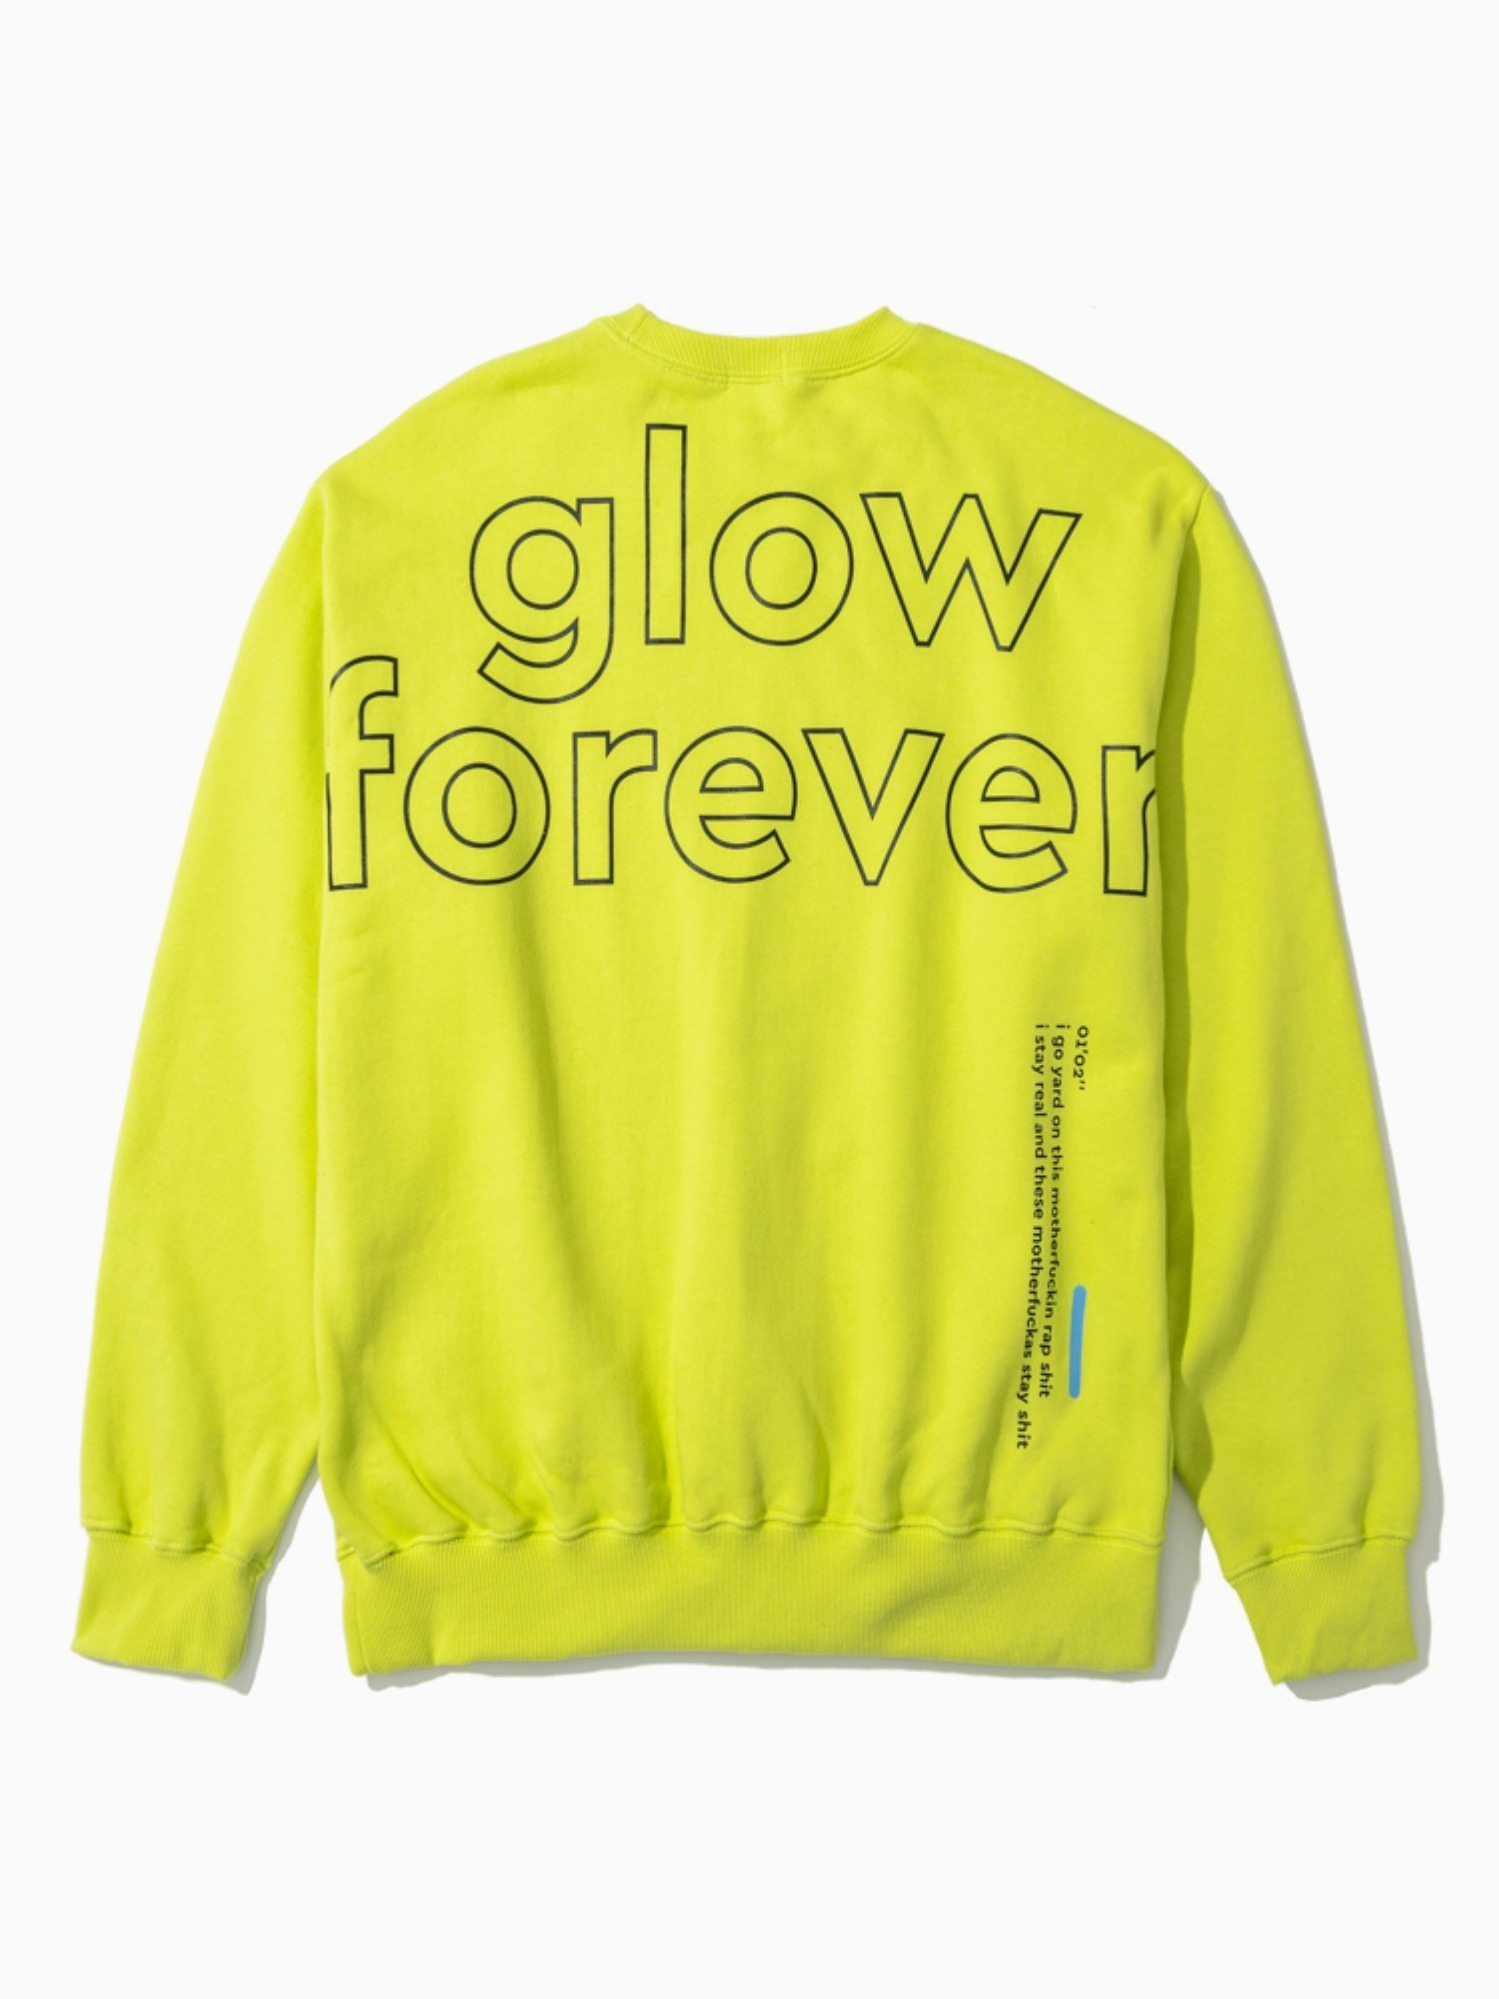 (소량 입고) The Quiett [glow forever] - Crew neck Shirts (3rd pre-oreder)